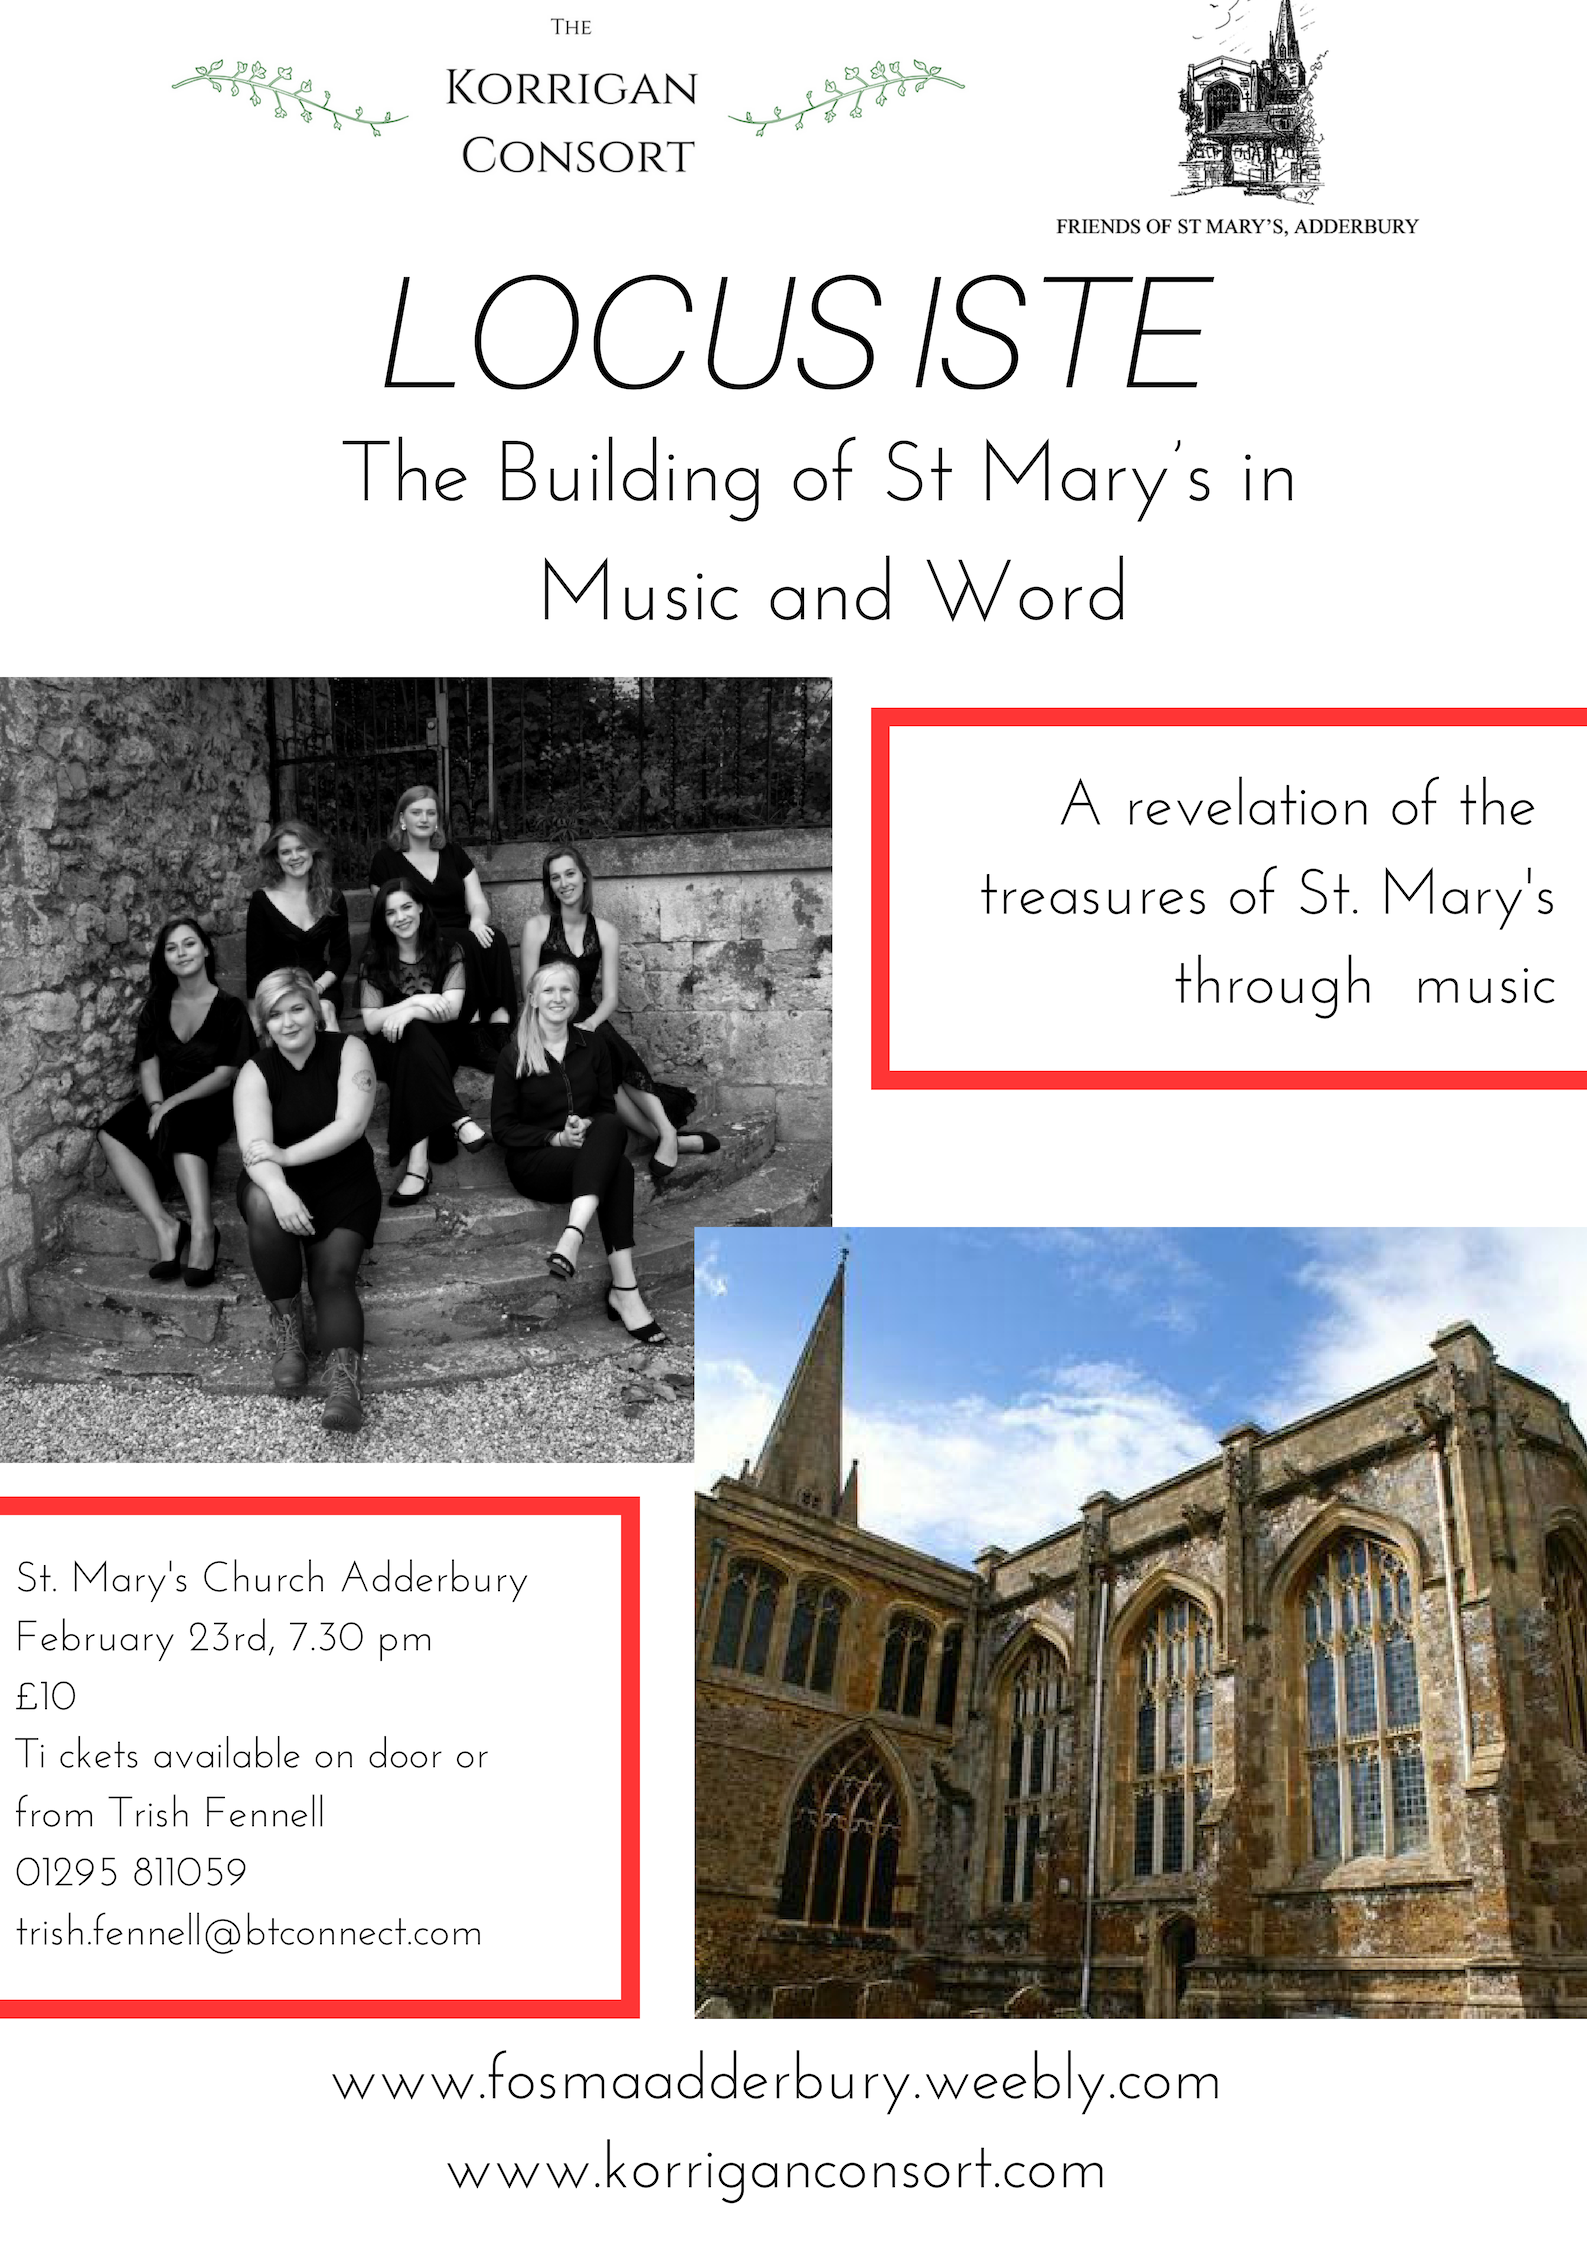 Locus Iste: A Revelation of the Treasures of St. Mary's Adderbury